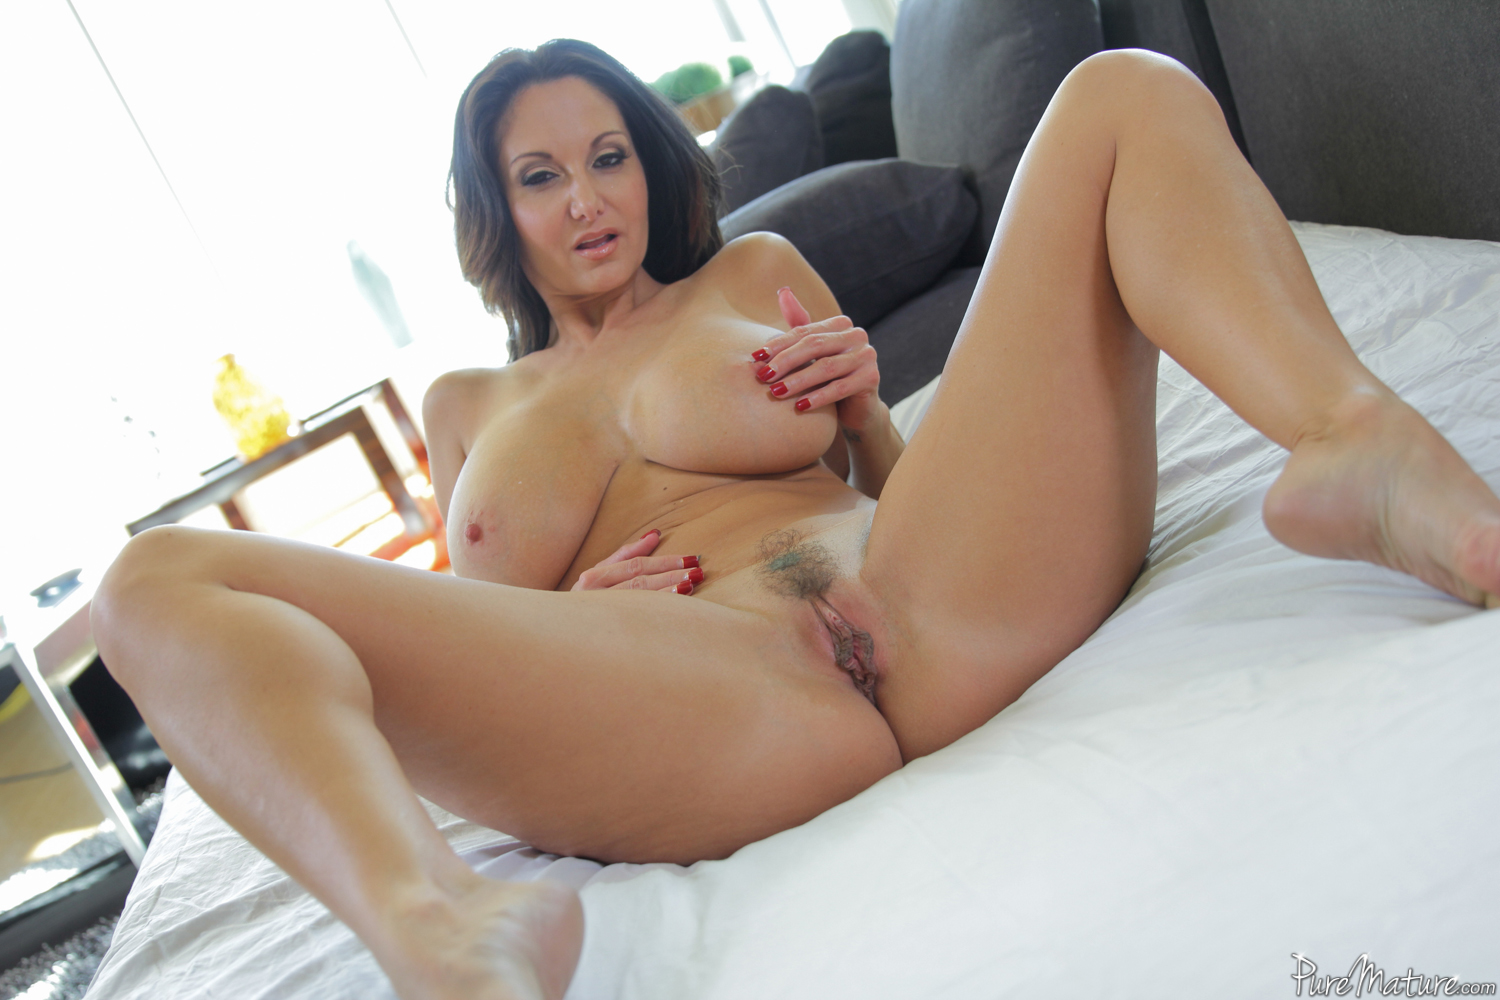 Ava addams huge boobs in action 4